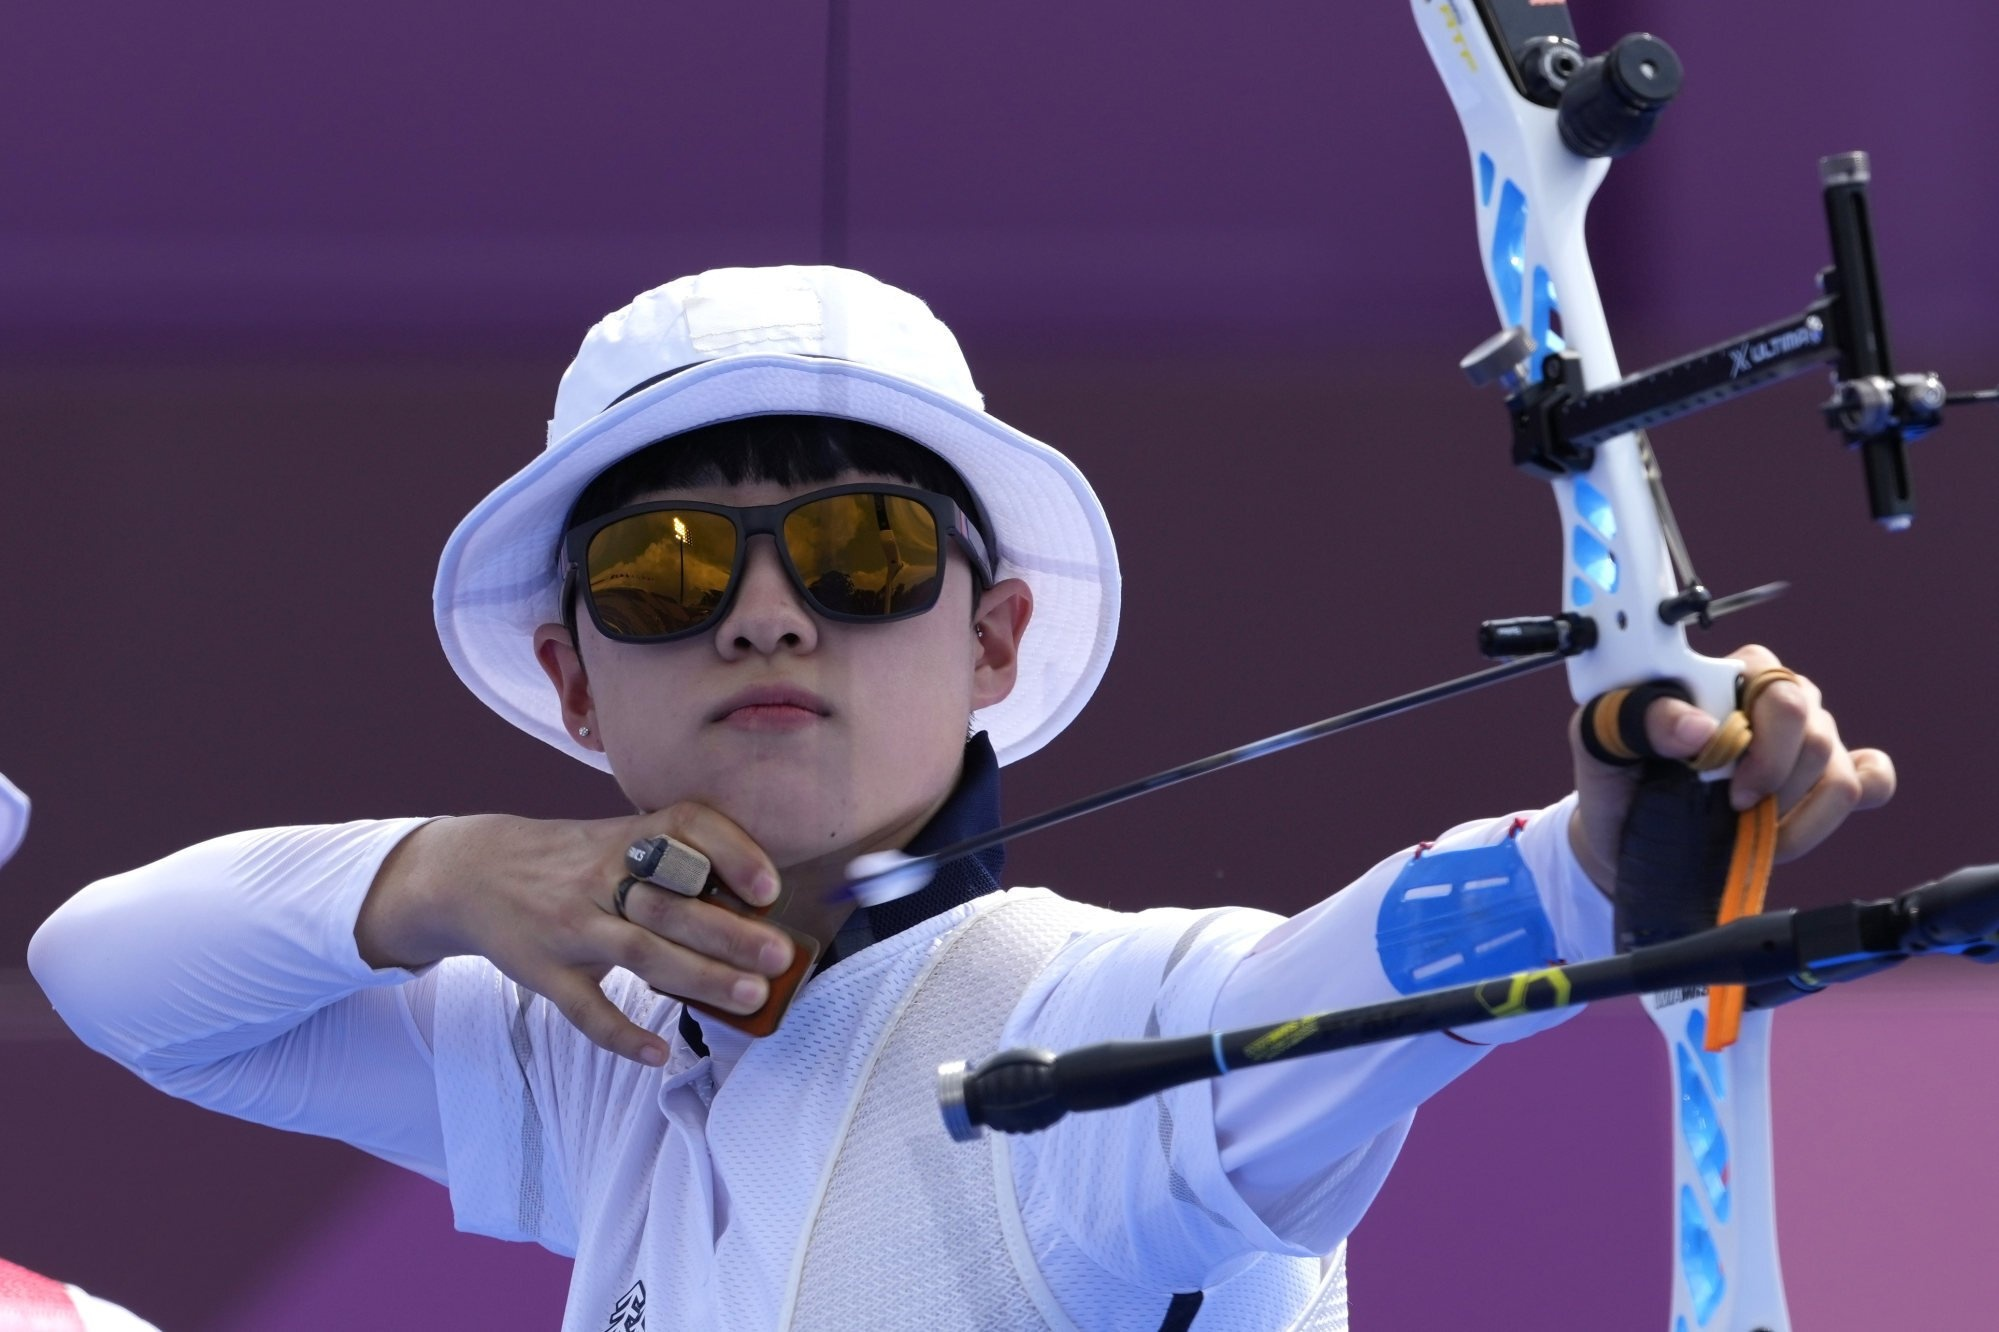 Van dong vien Olympic thich Kpop anh 4